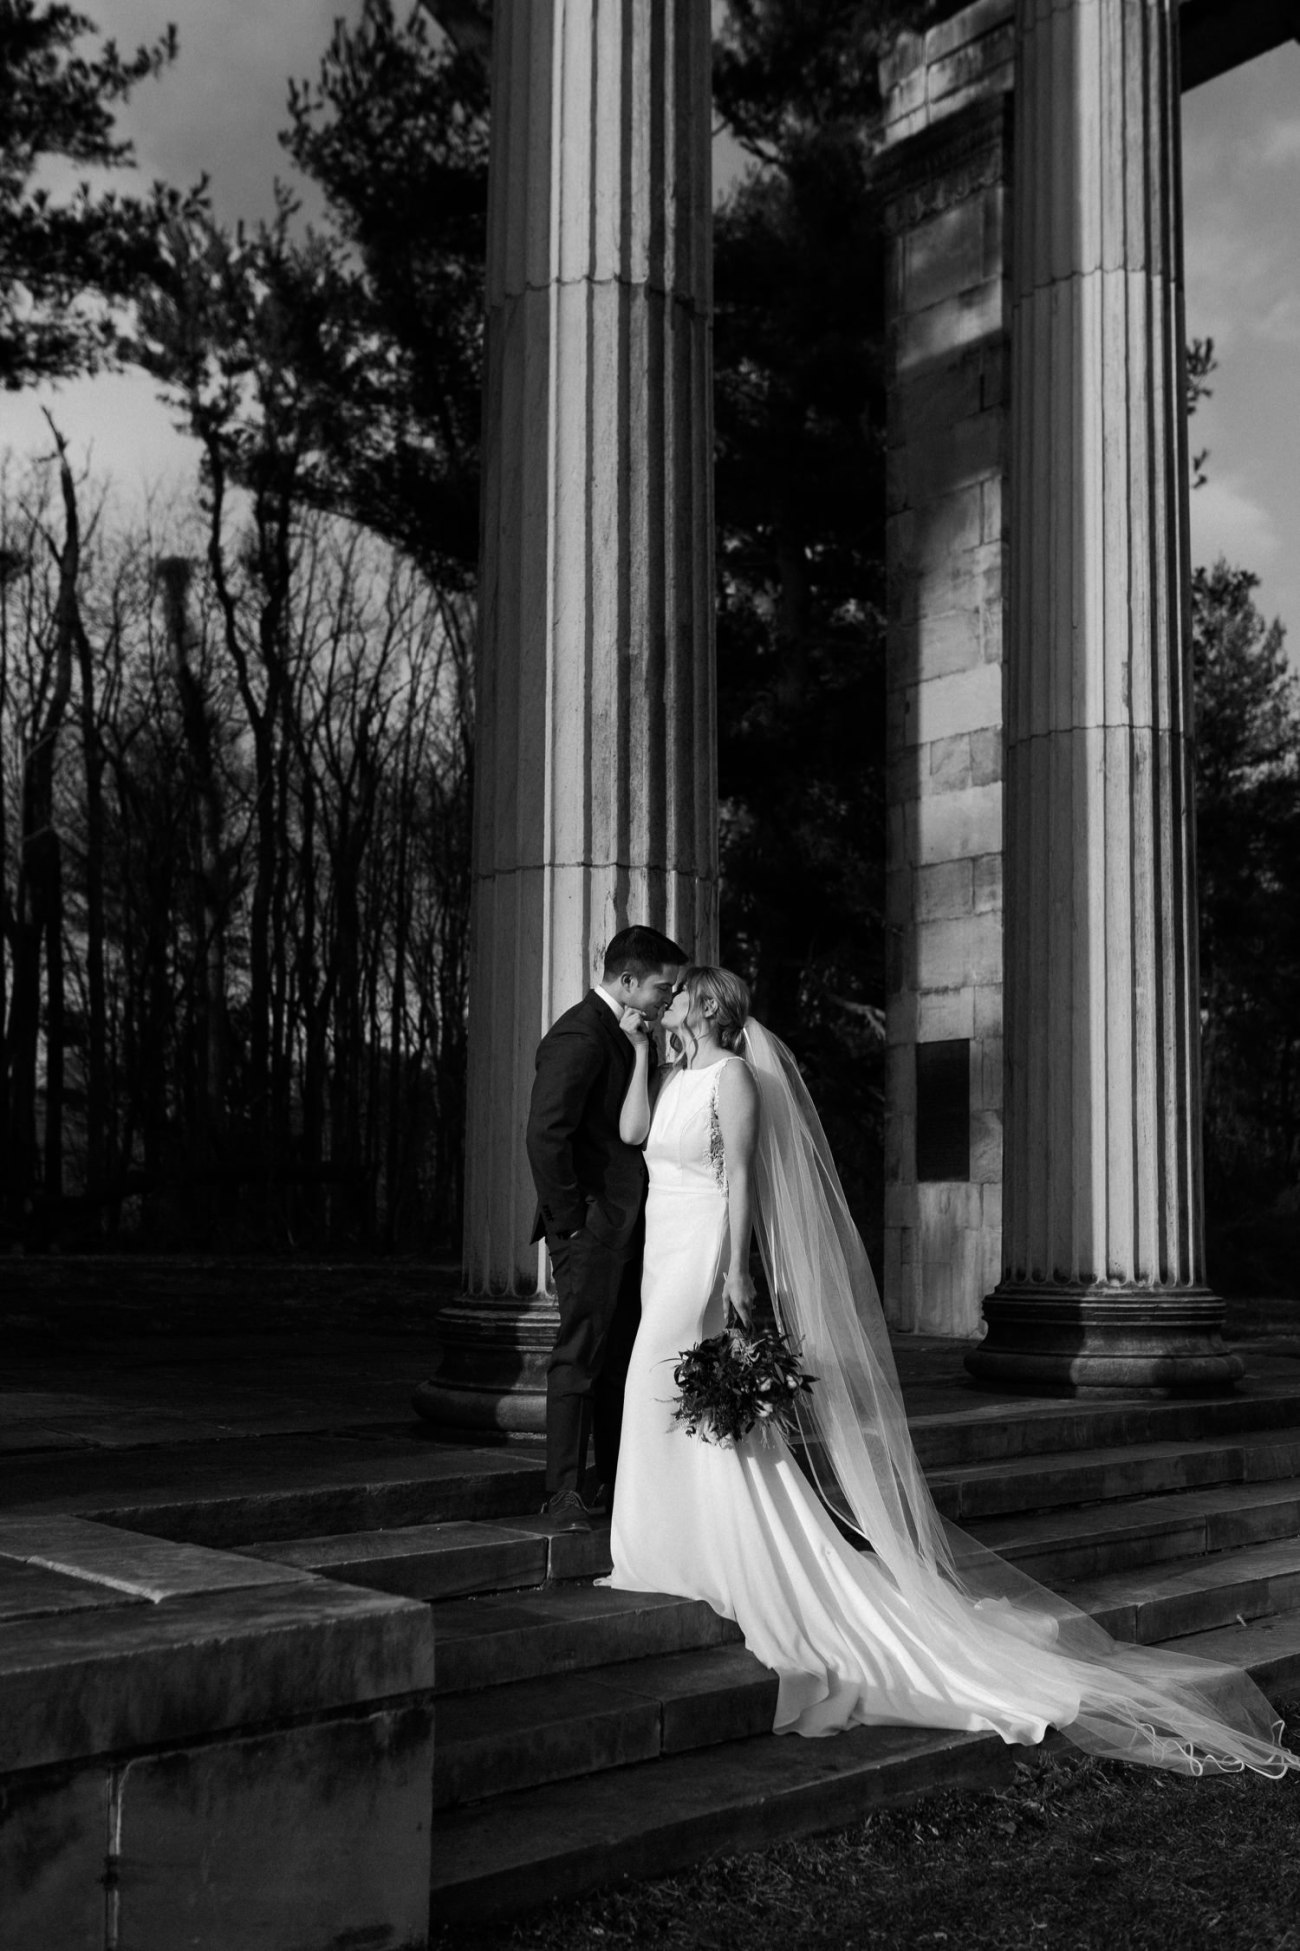 Princeton Battlefield Wedding Princeton University Elopement New Jersey Wedding Photographer Anais Possamai Photography 26